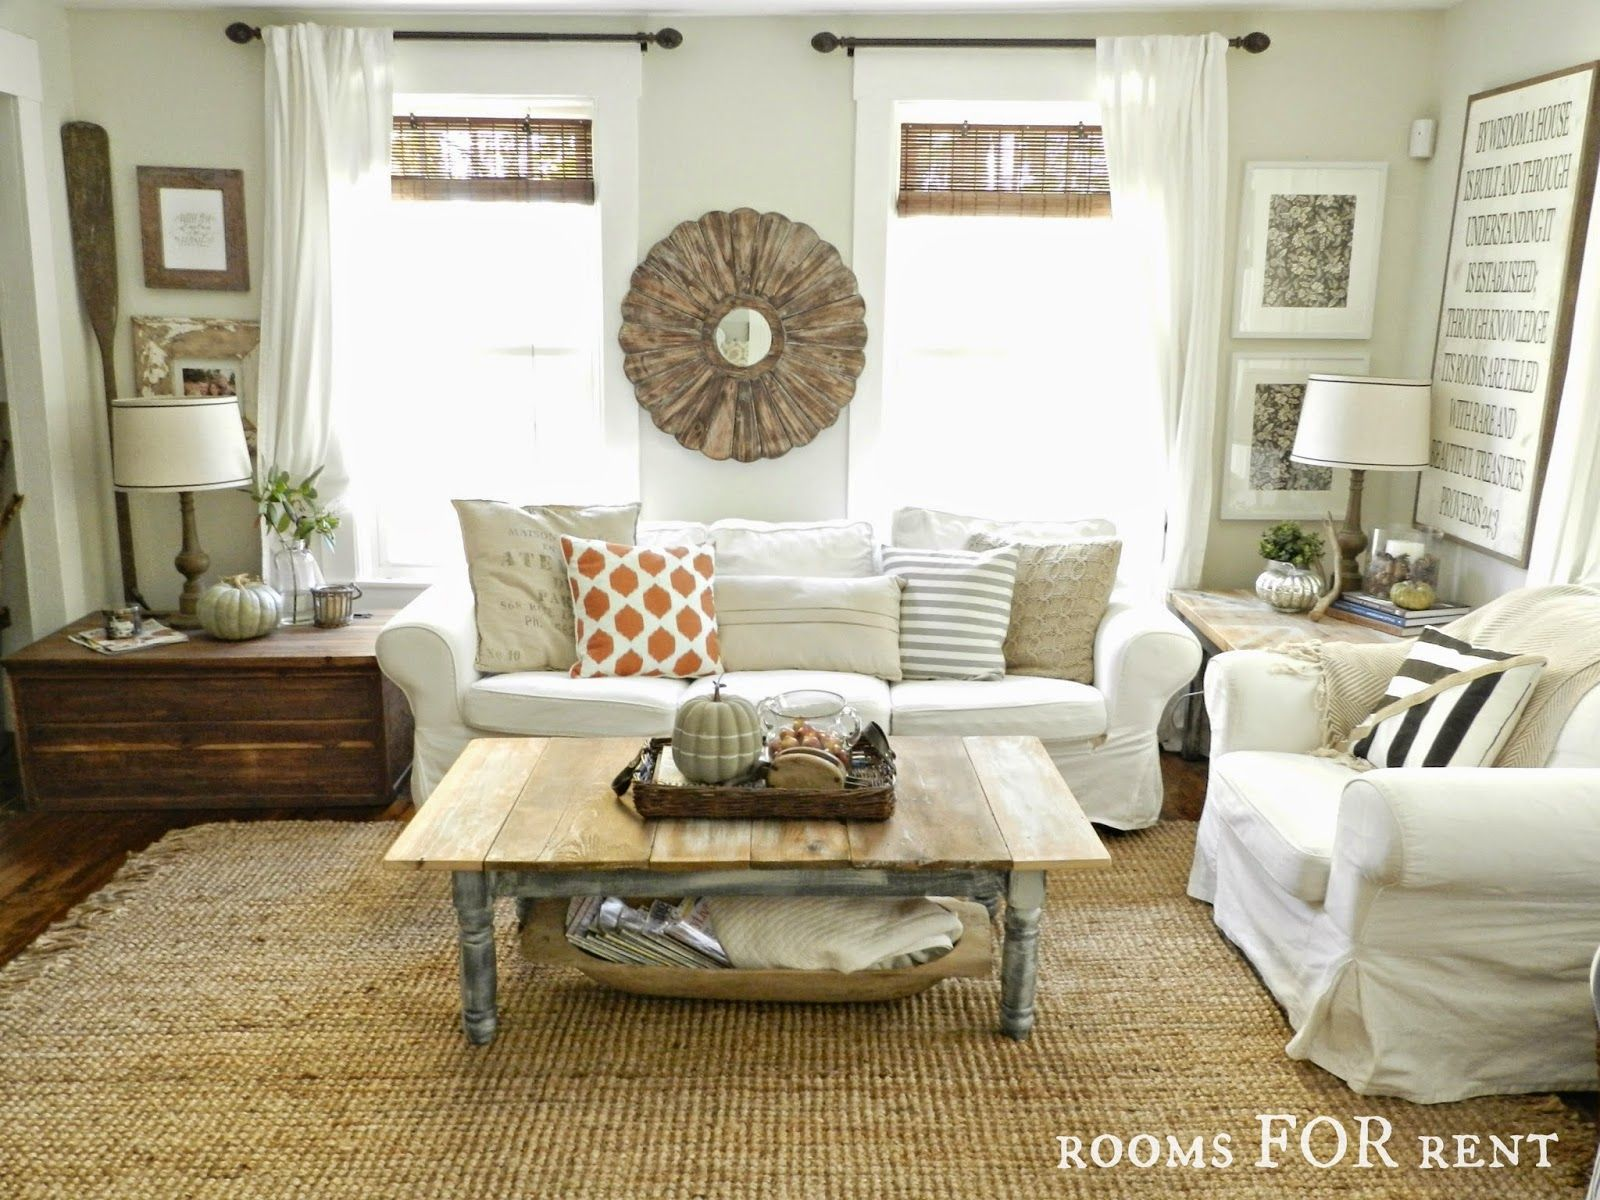 New Jute Rug In The Living Room  Rooms For Rent Blog Exclusive Pleasing Jute Rug In Dining Room Design Inspiration